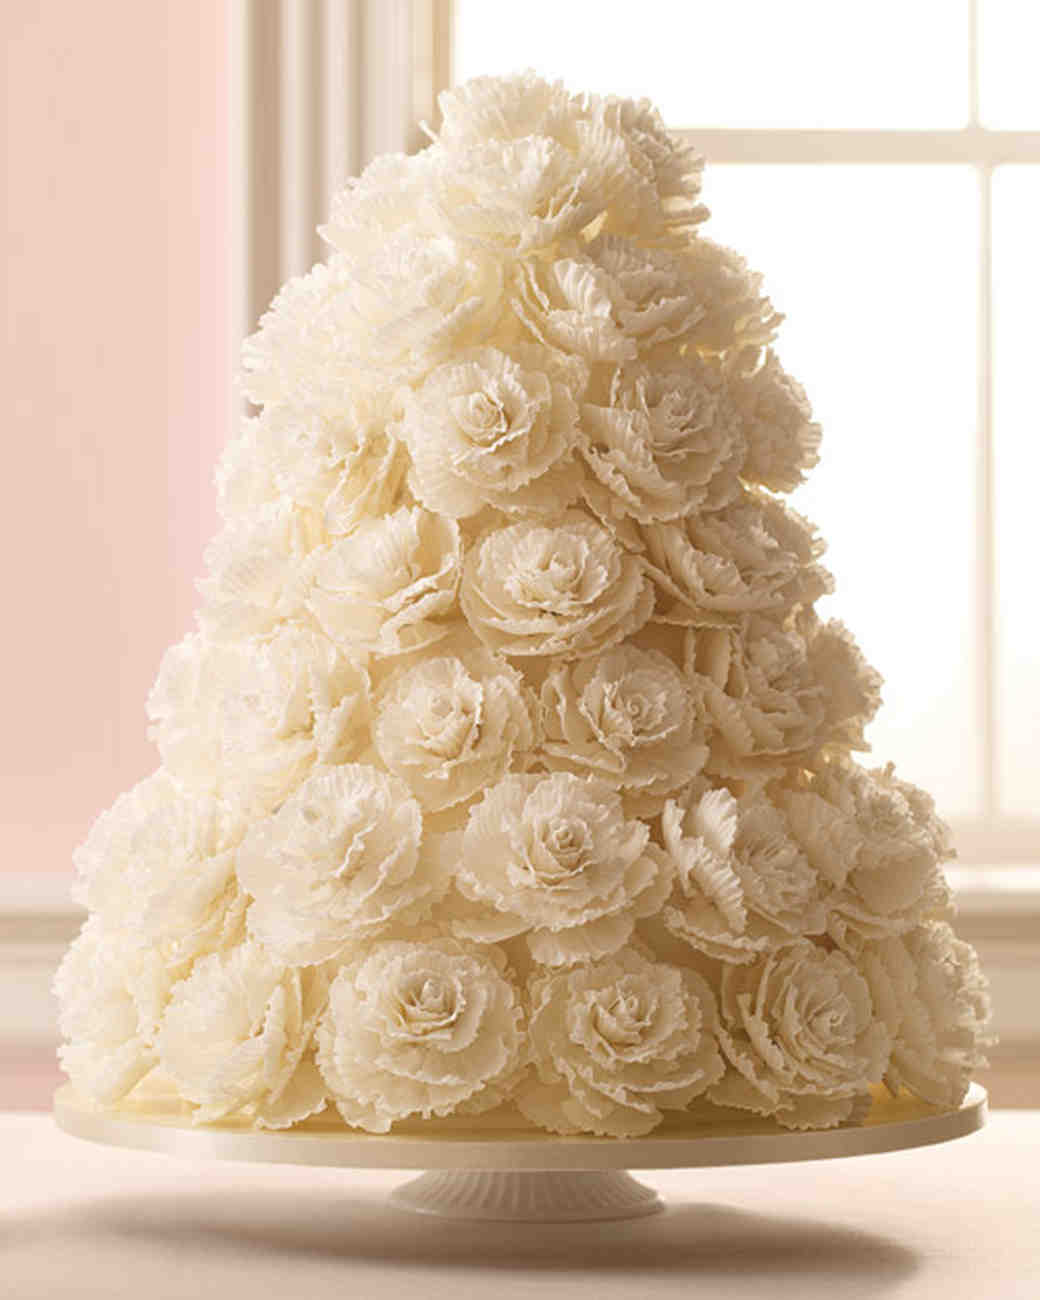 50 great wedding cakes wedding cakes pictures White Rose Wedding Cake